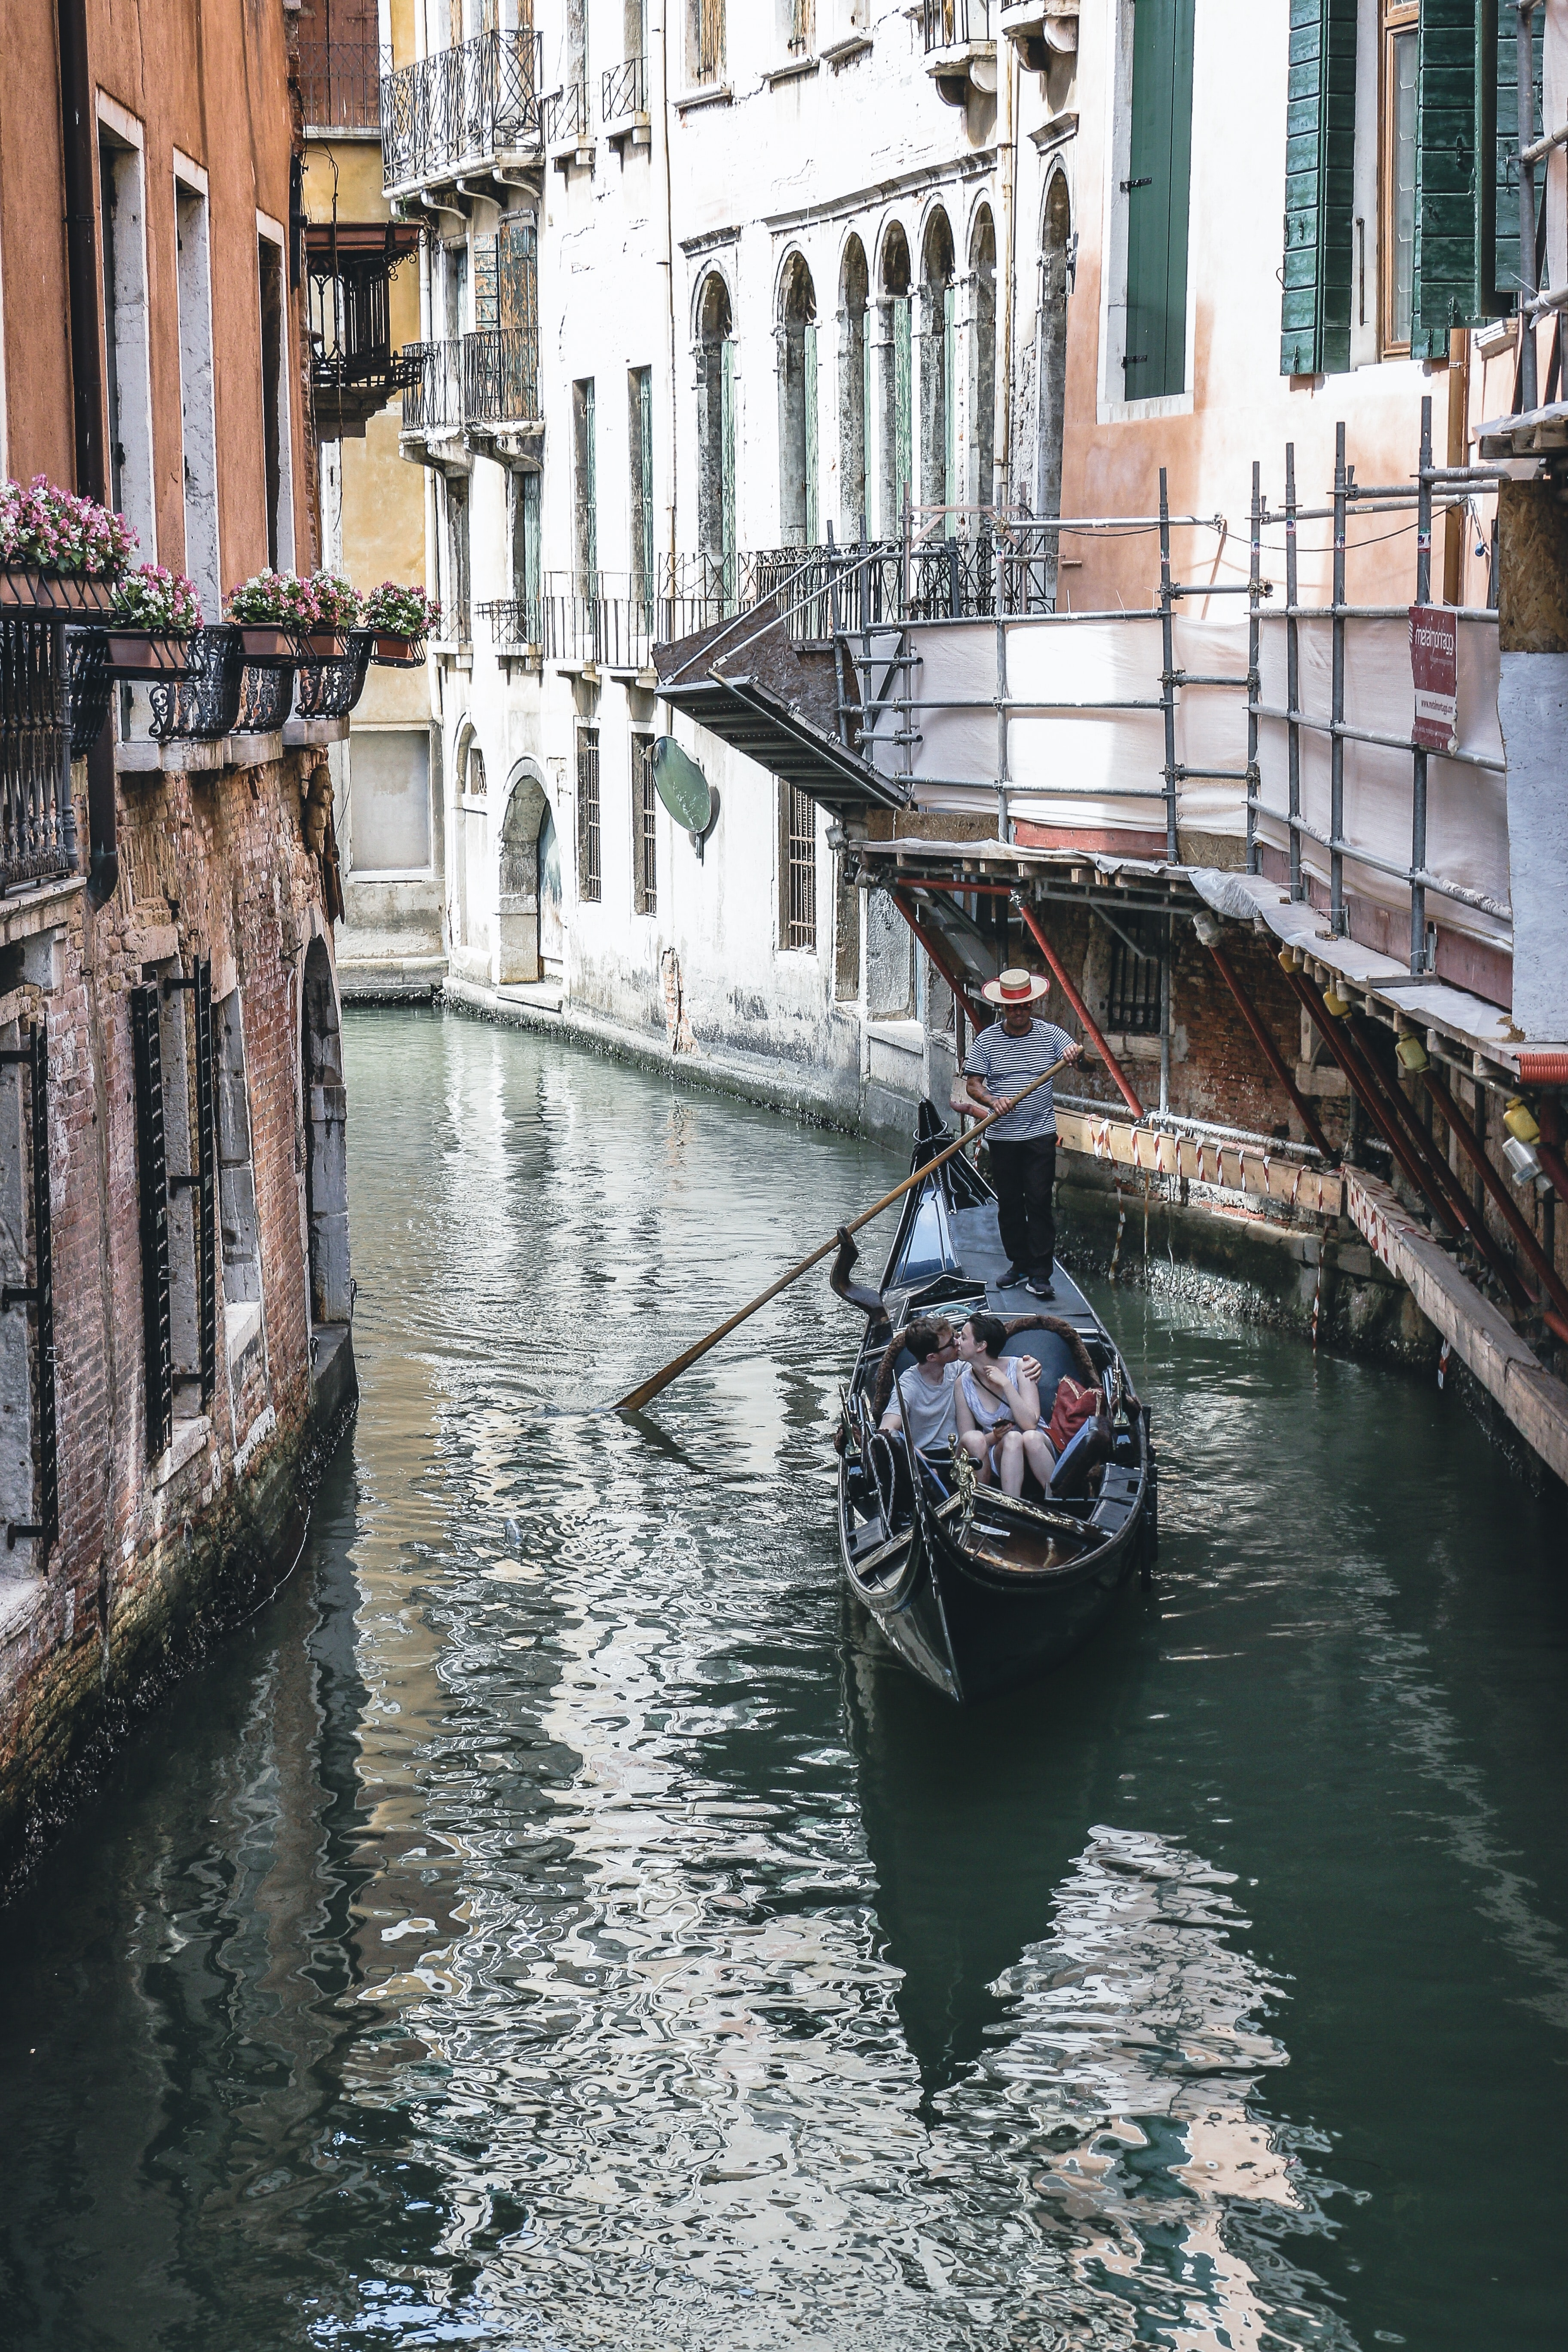 couple riding boat in Venice Canal at daytime